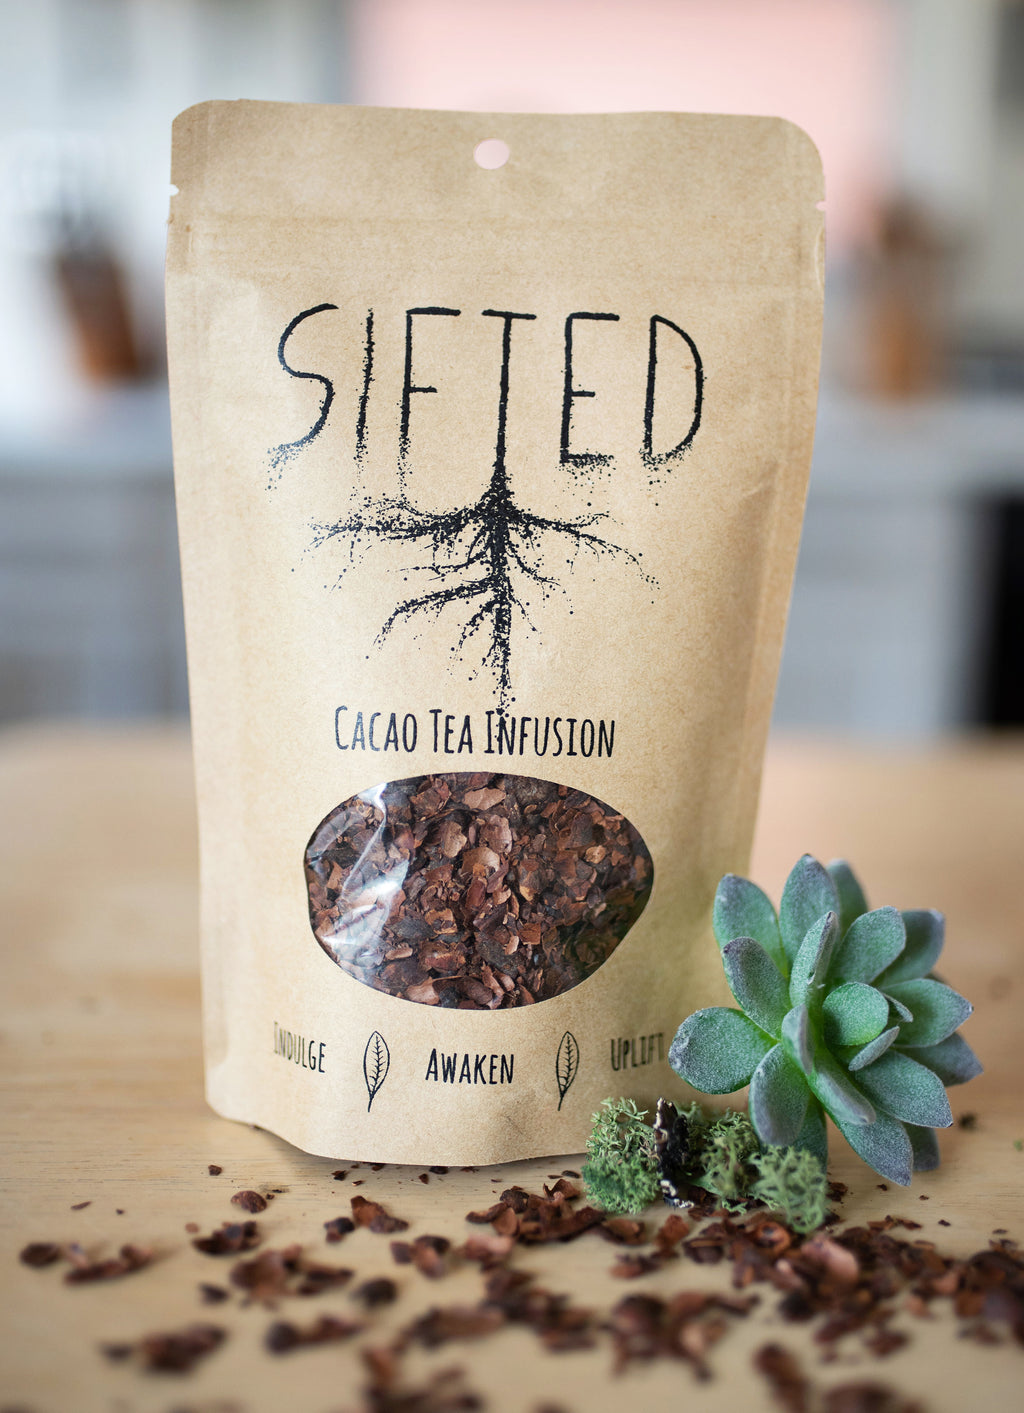 Sifted Cacao Tea Infusion 4oz Bag